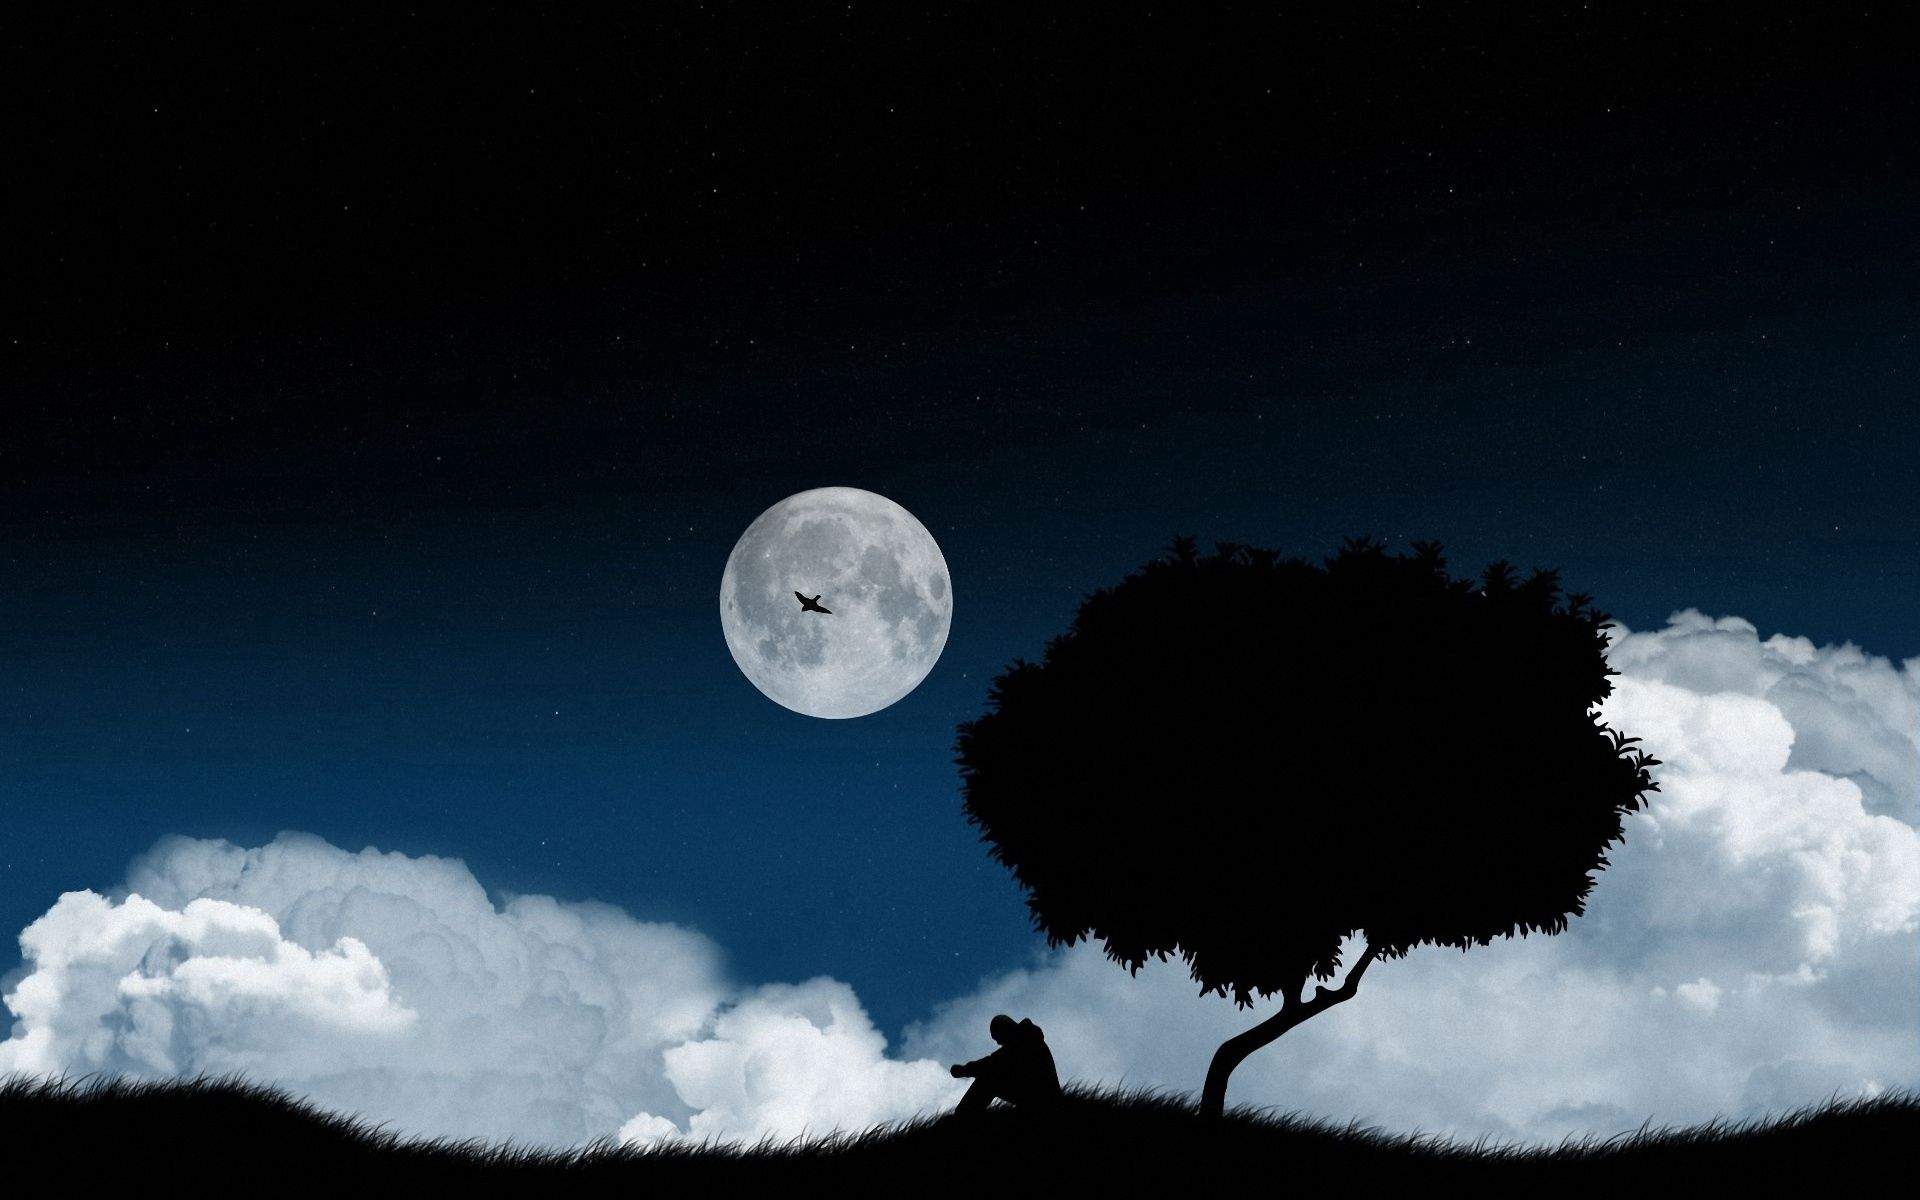 91135 download wallpaper Loneliness, Sky, Night, Vector, Dark, Wood, Tree, Polyana, Glade screensavers and pictures for free